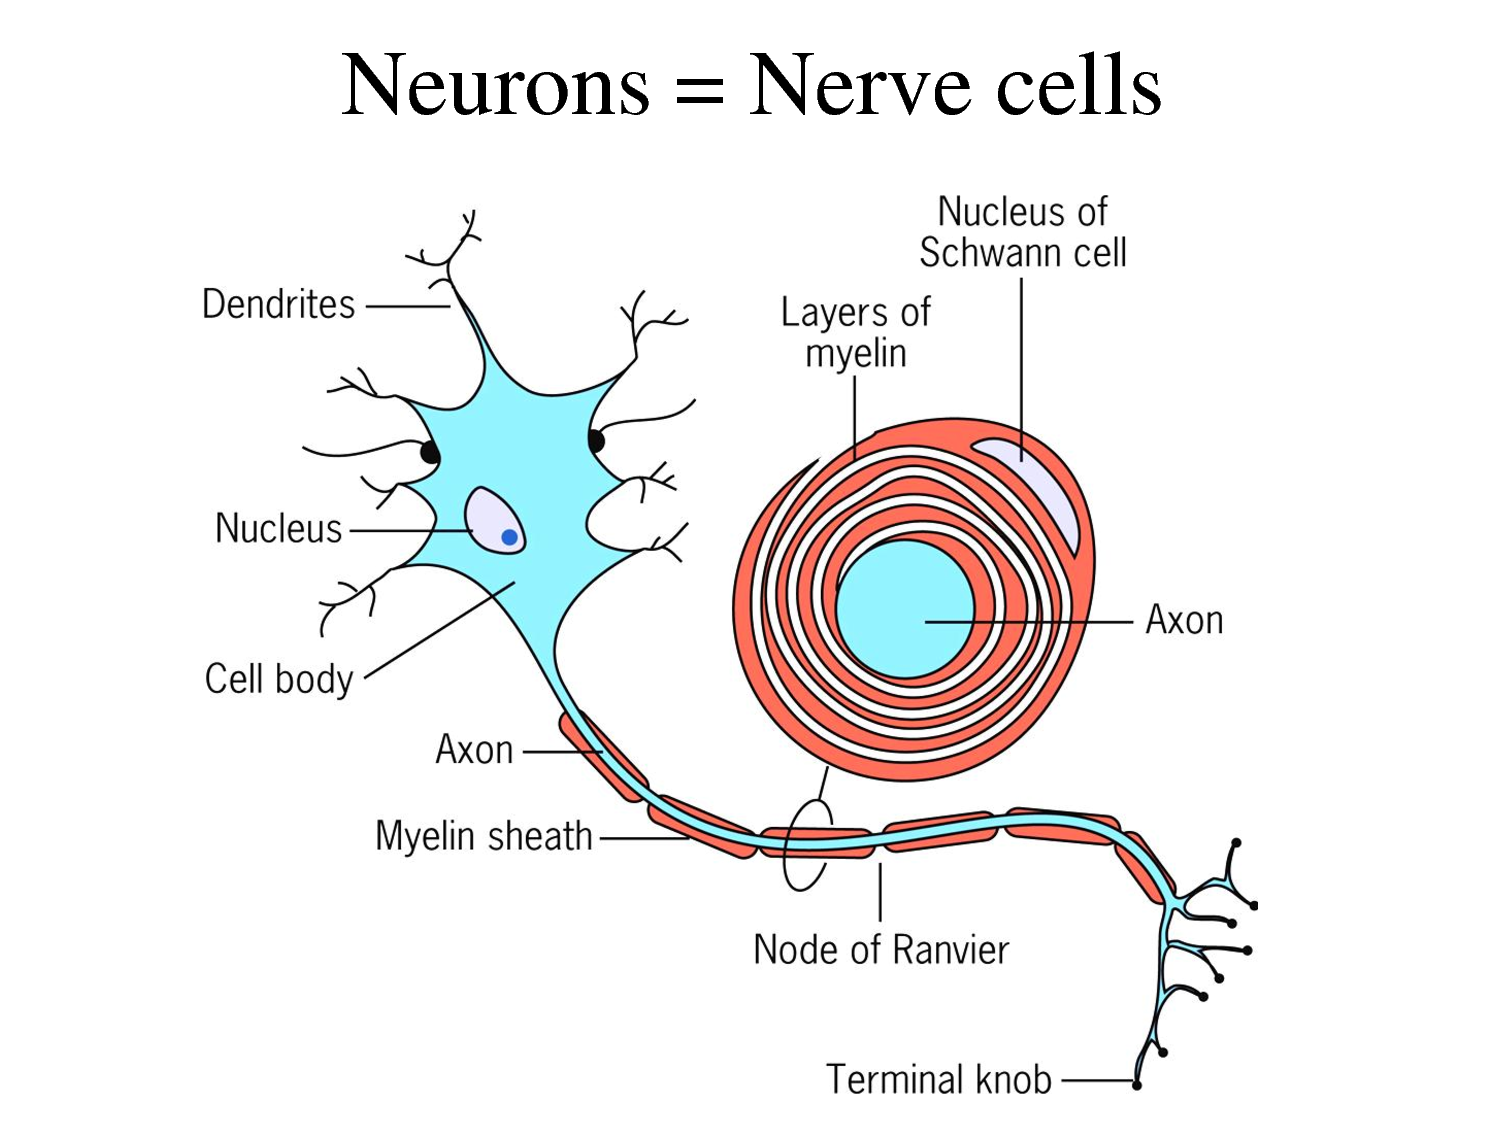 checking the nerve cell image next to the title may help you understand some of the terminology